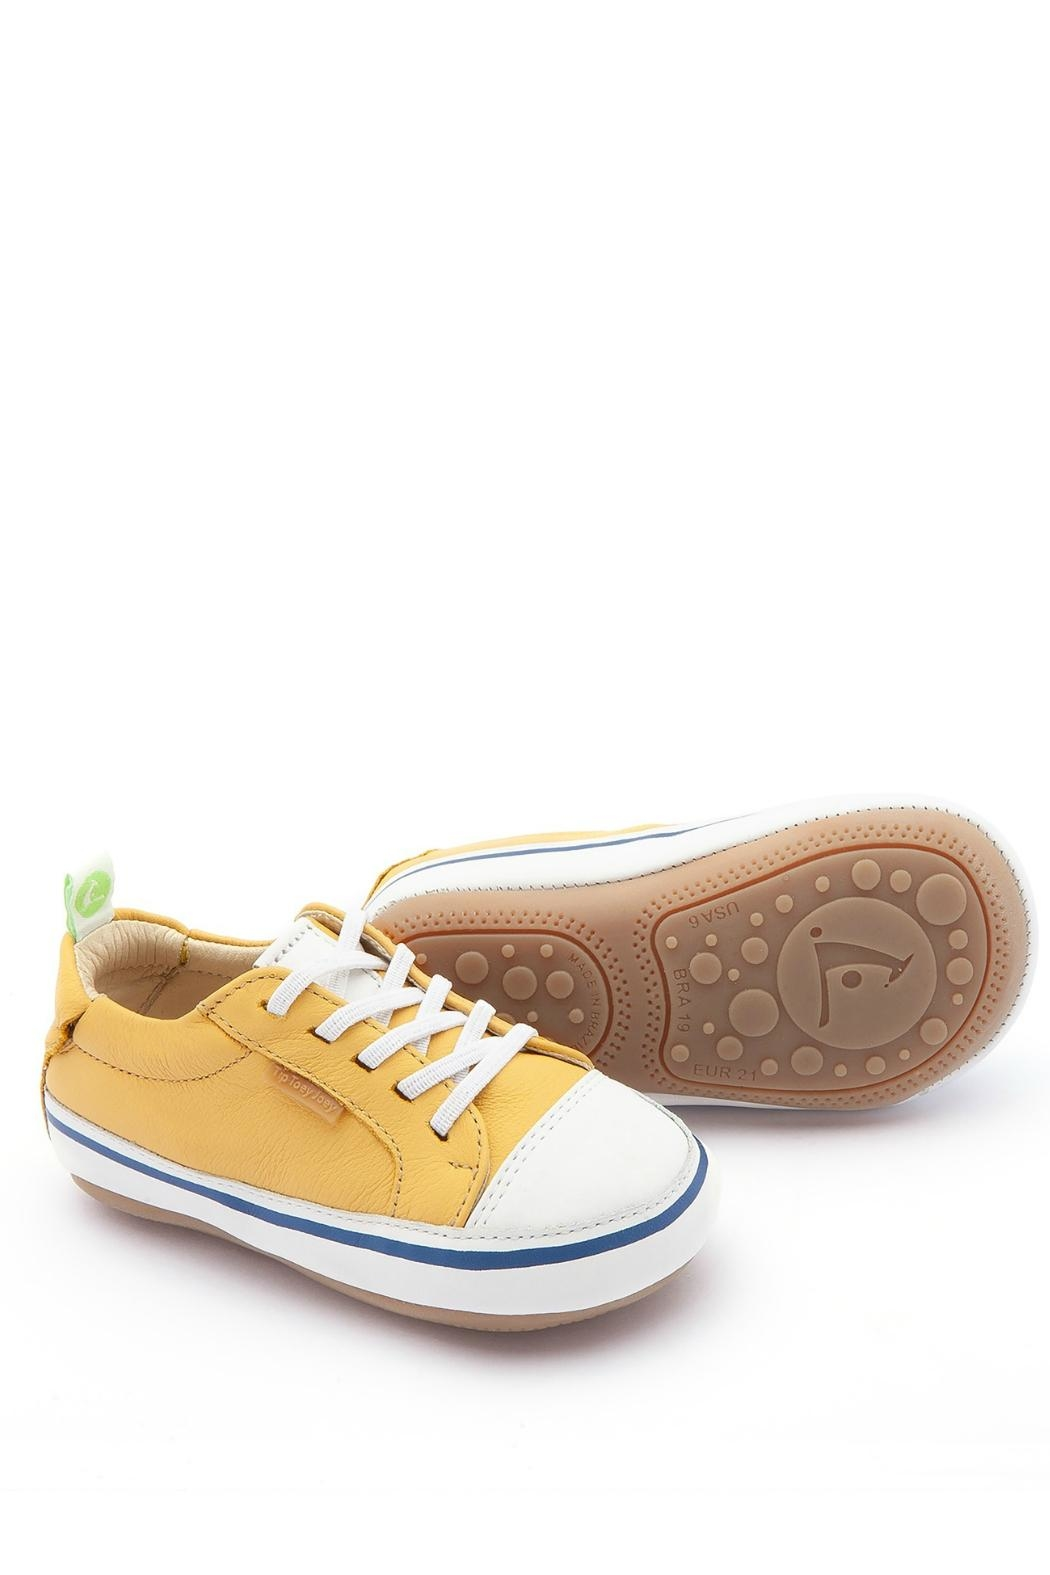 Tip Toey Joey Funky Yellow Sneakers - Main Image